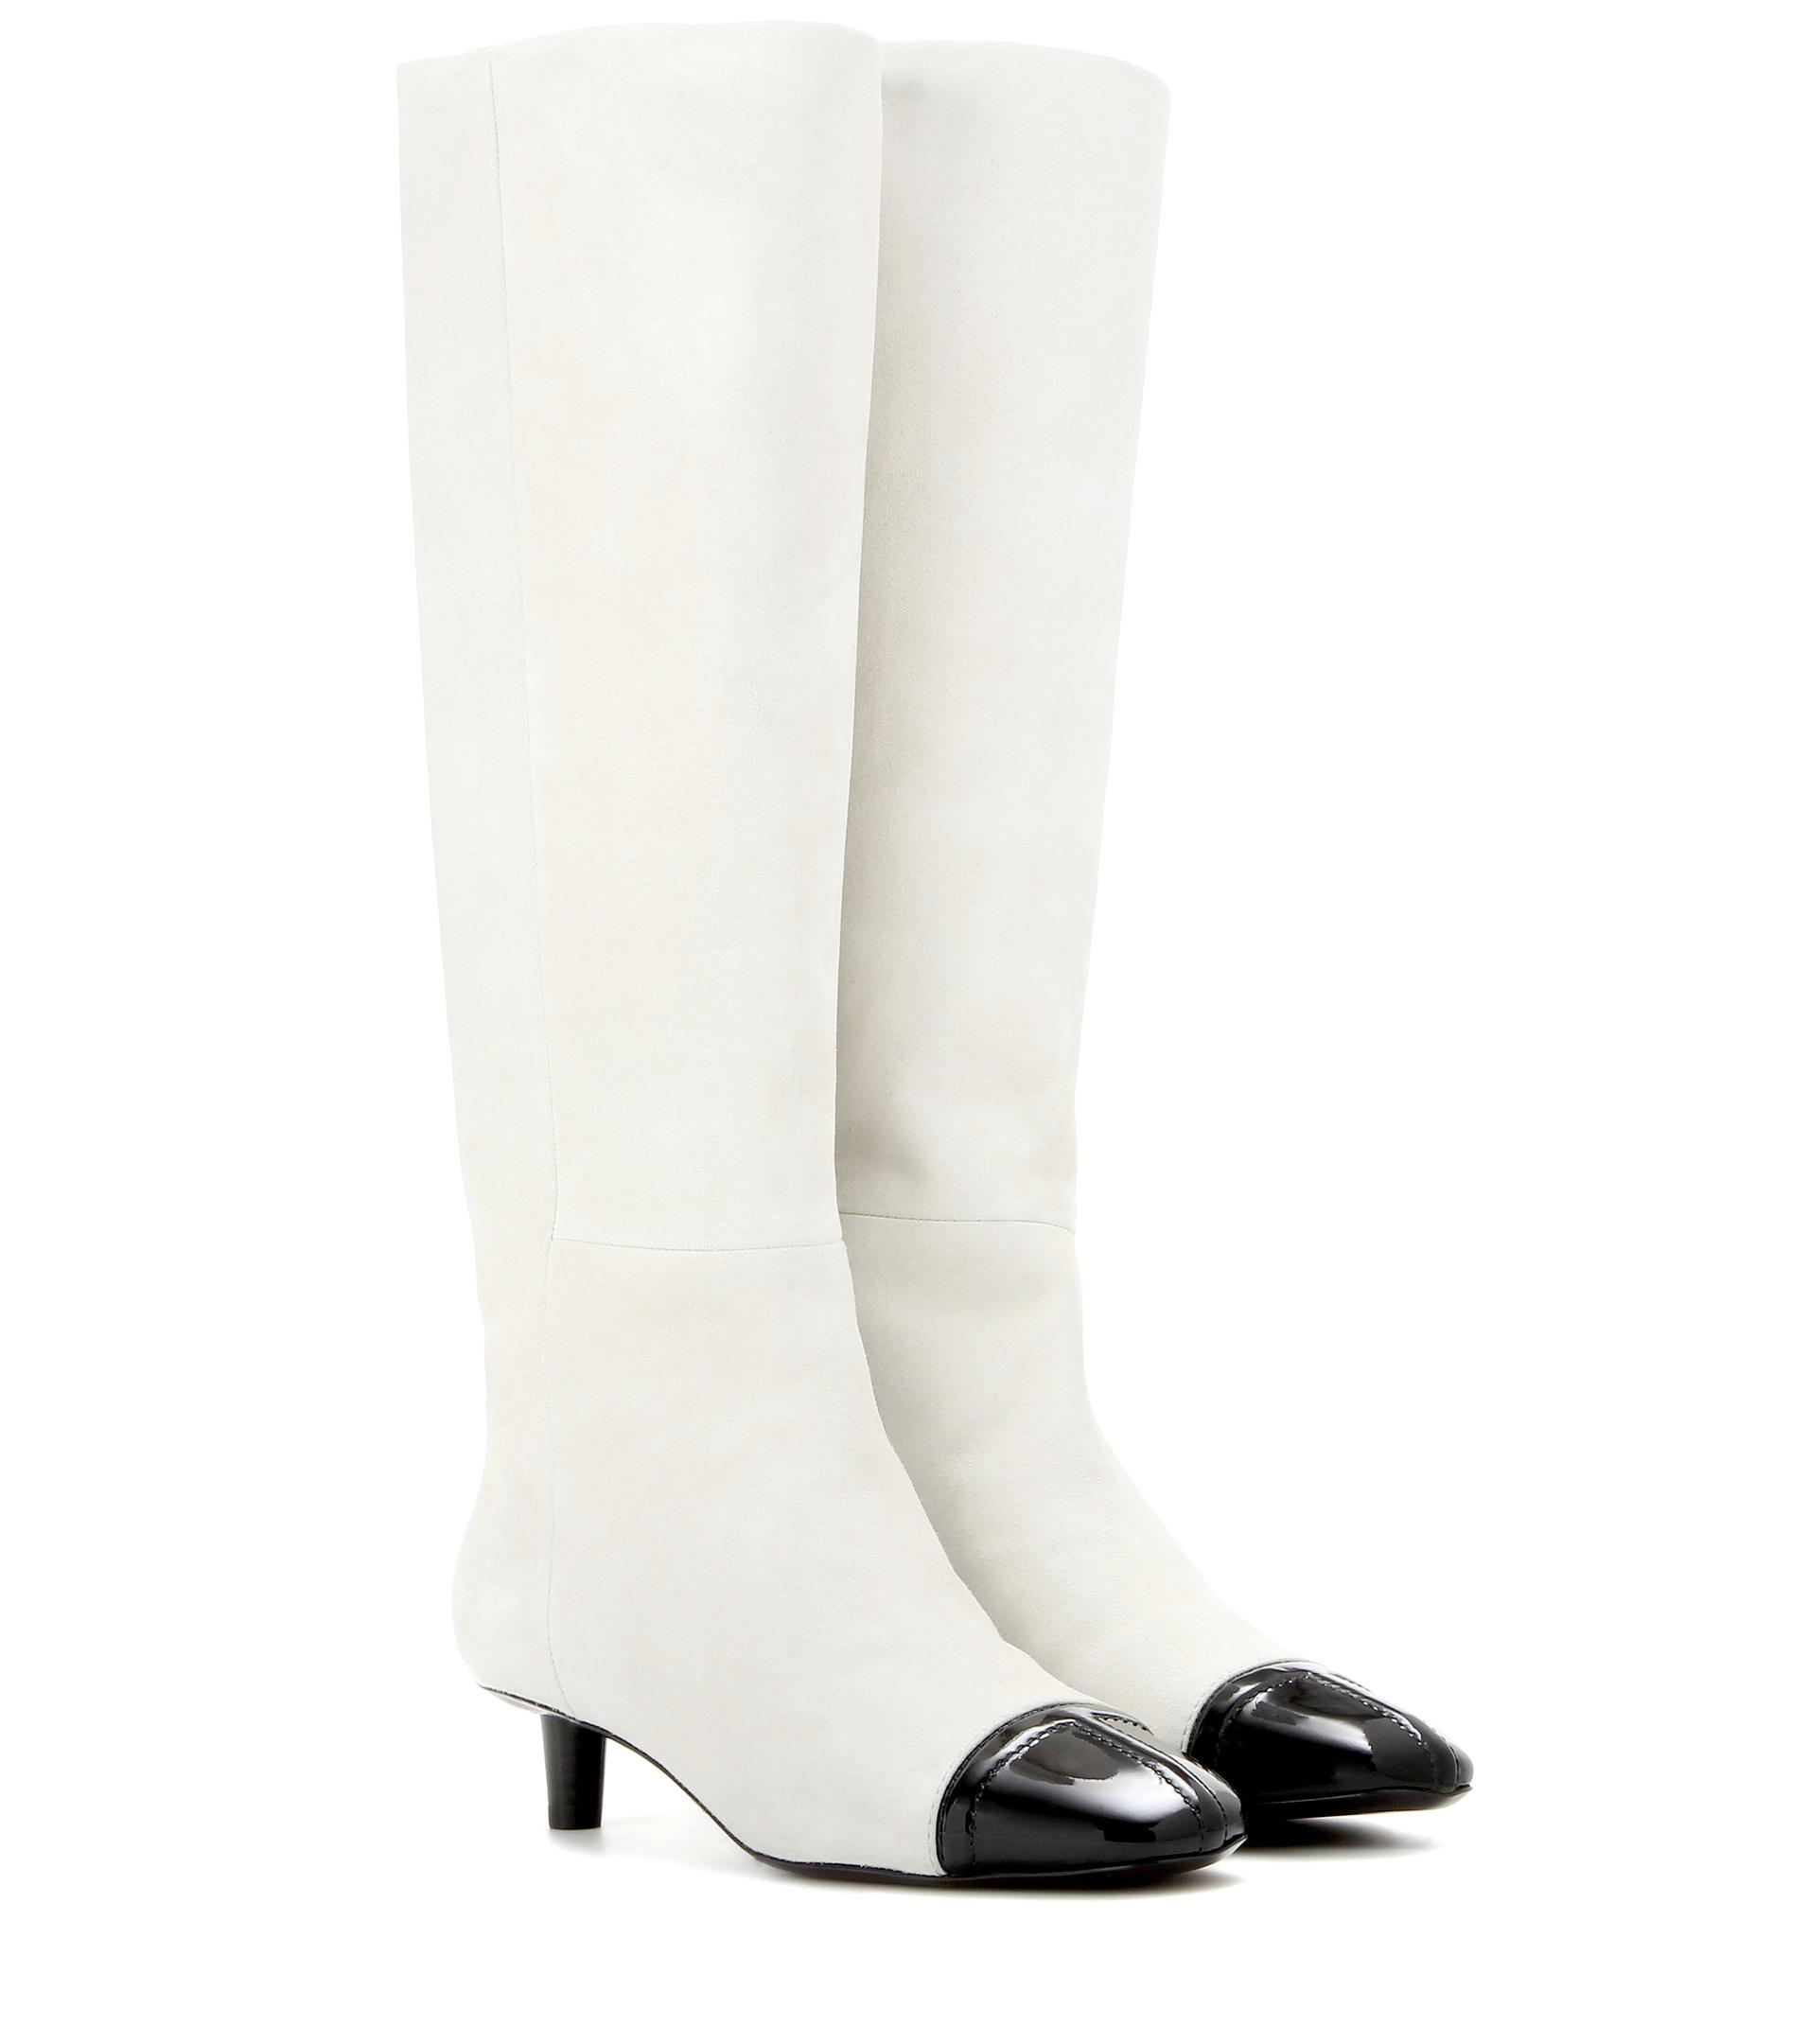 tom ford suede knee high boots in white lyst